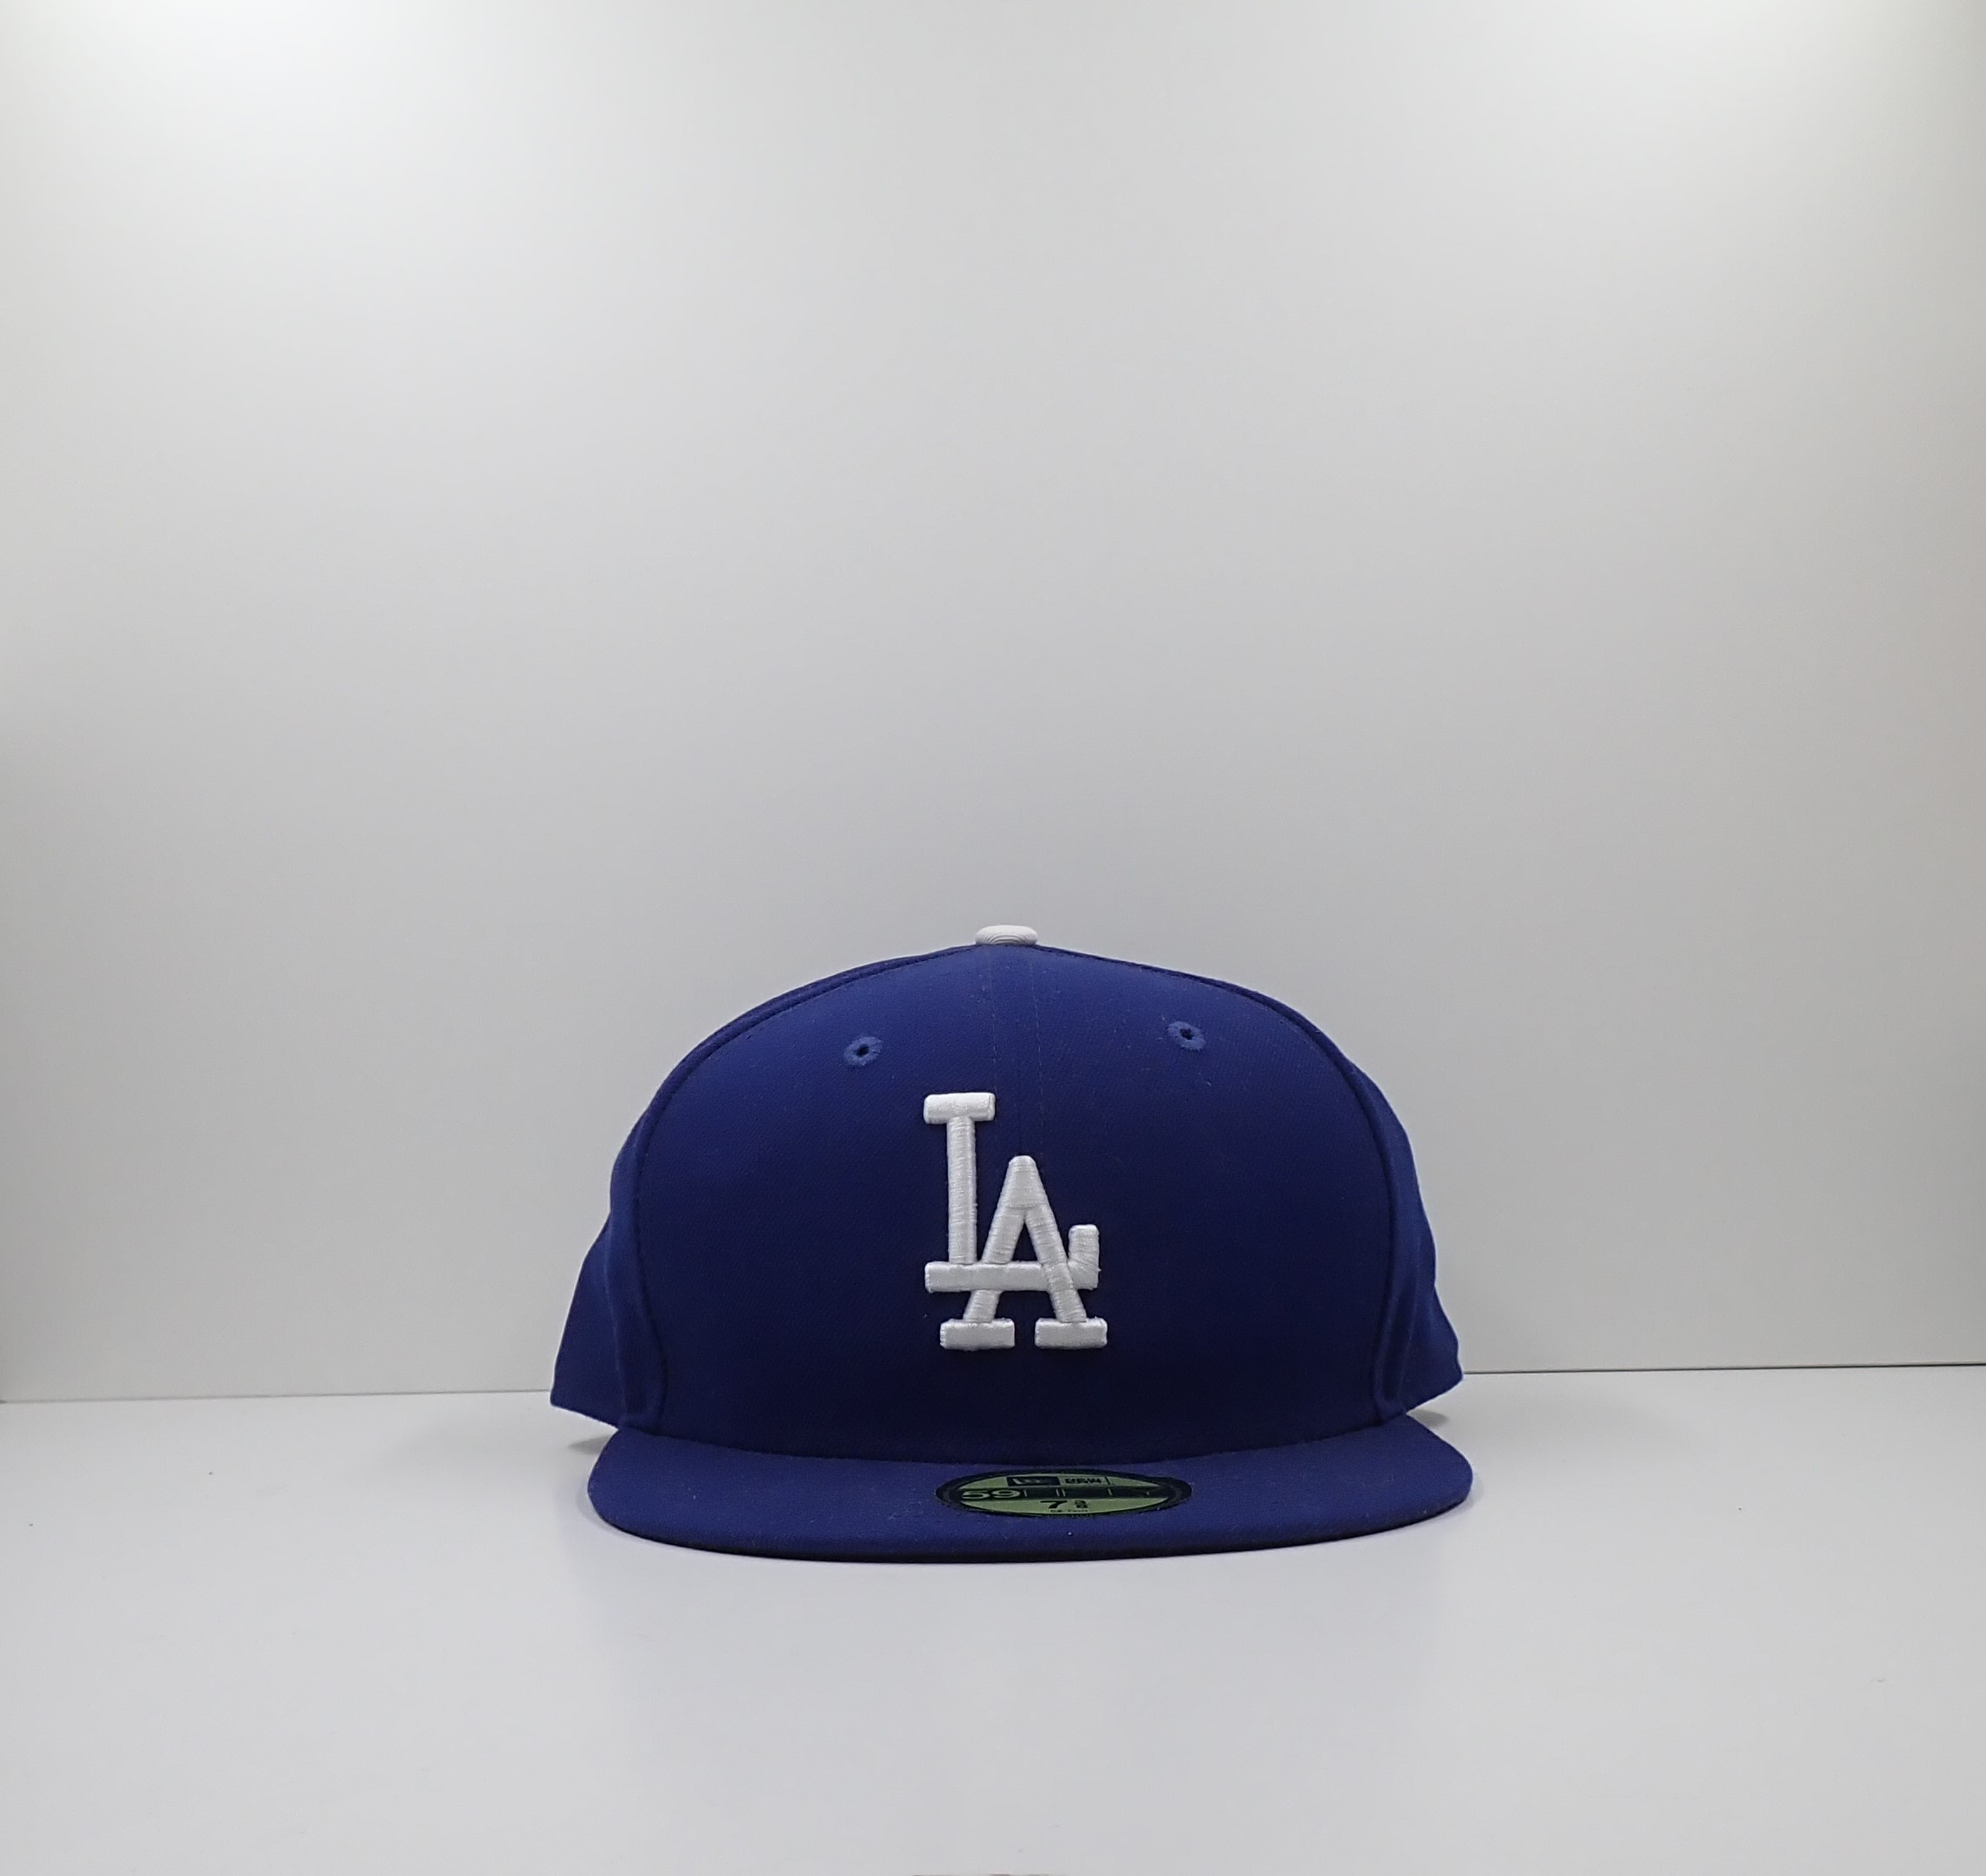 Los Angeles Dodgers 59Fifty New Era Cap